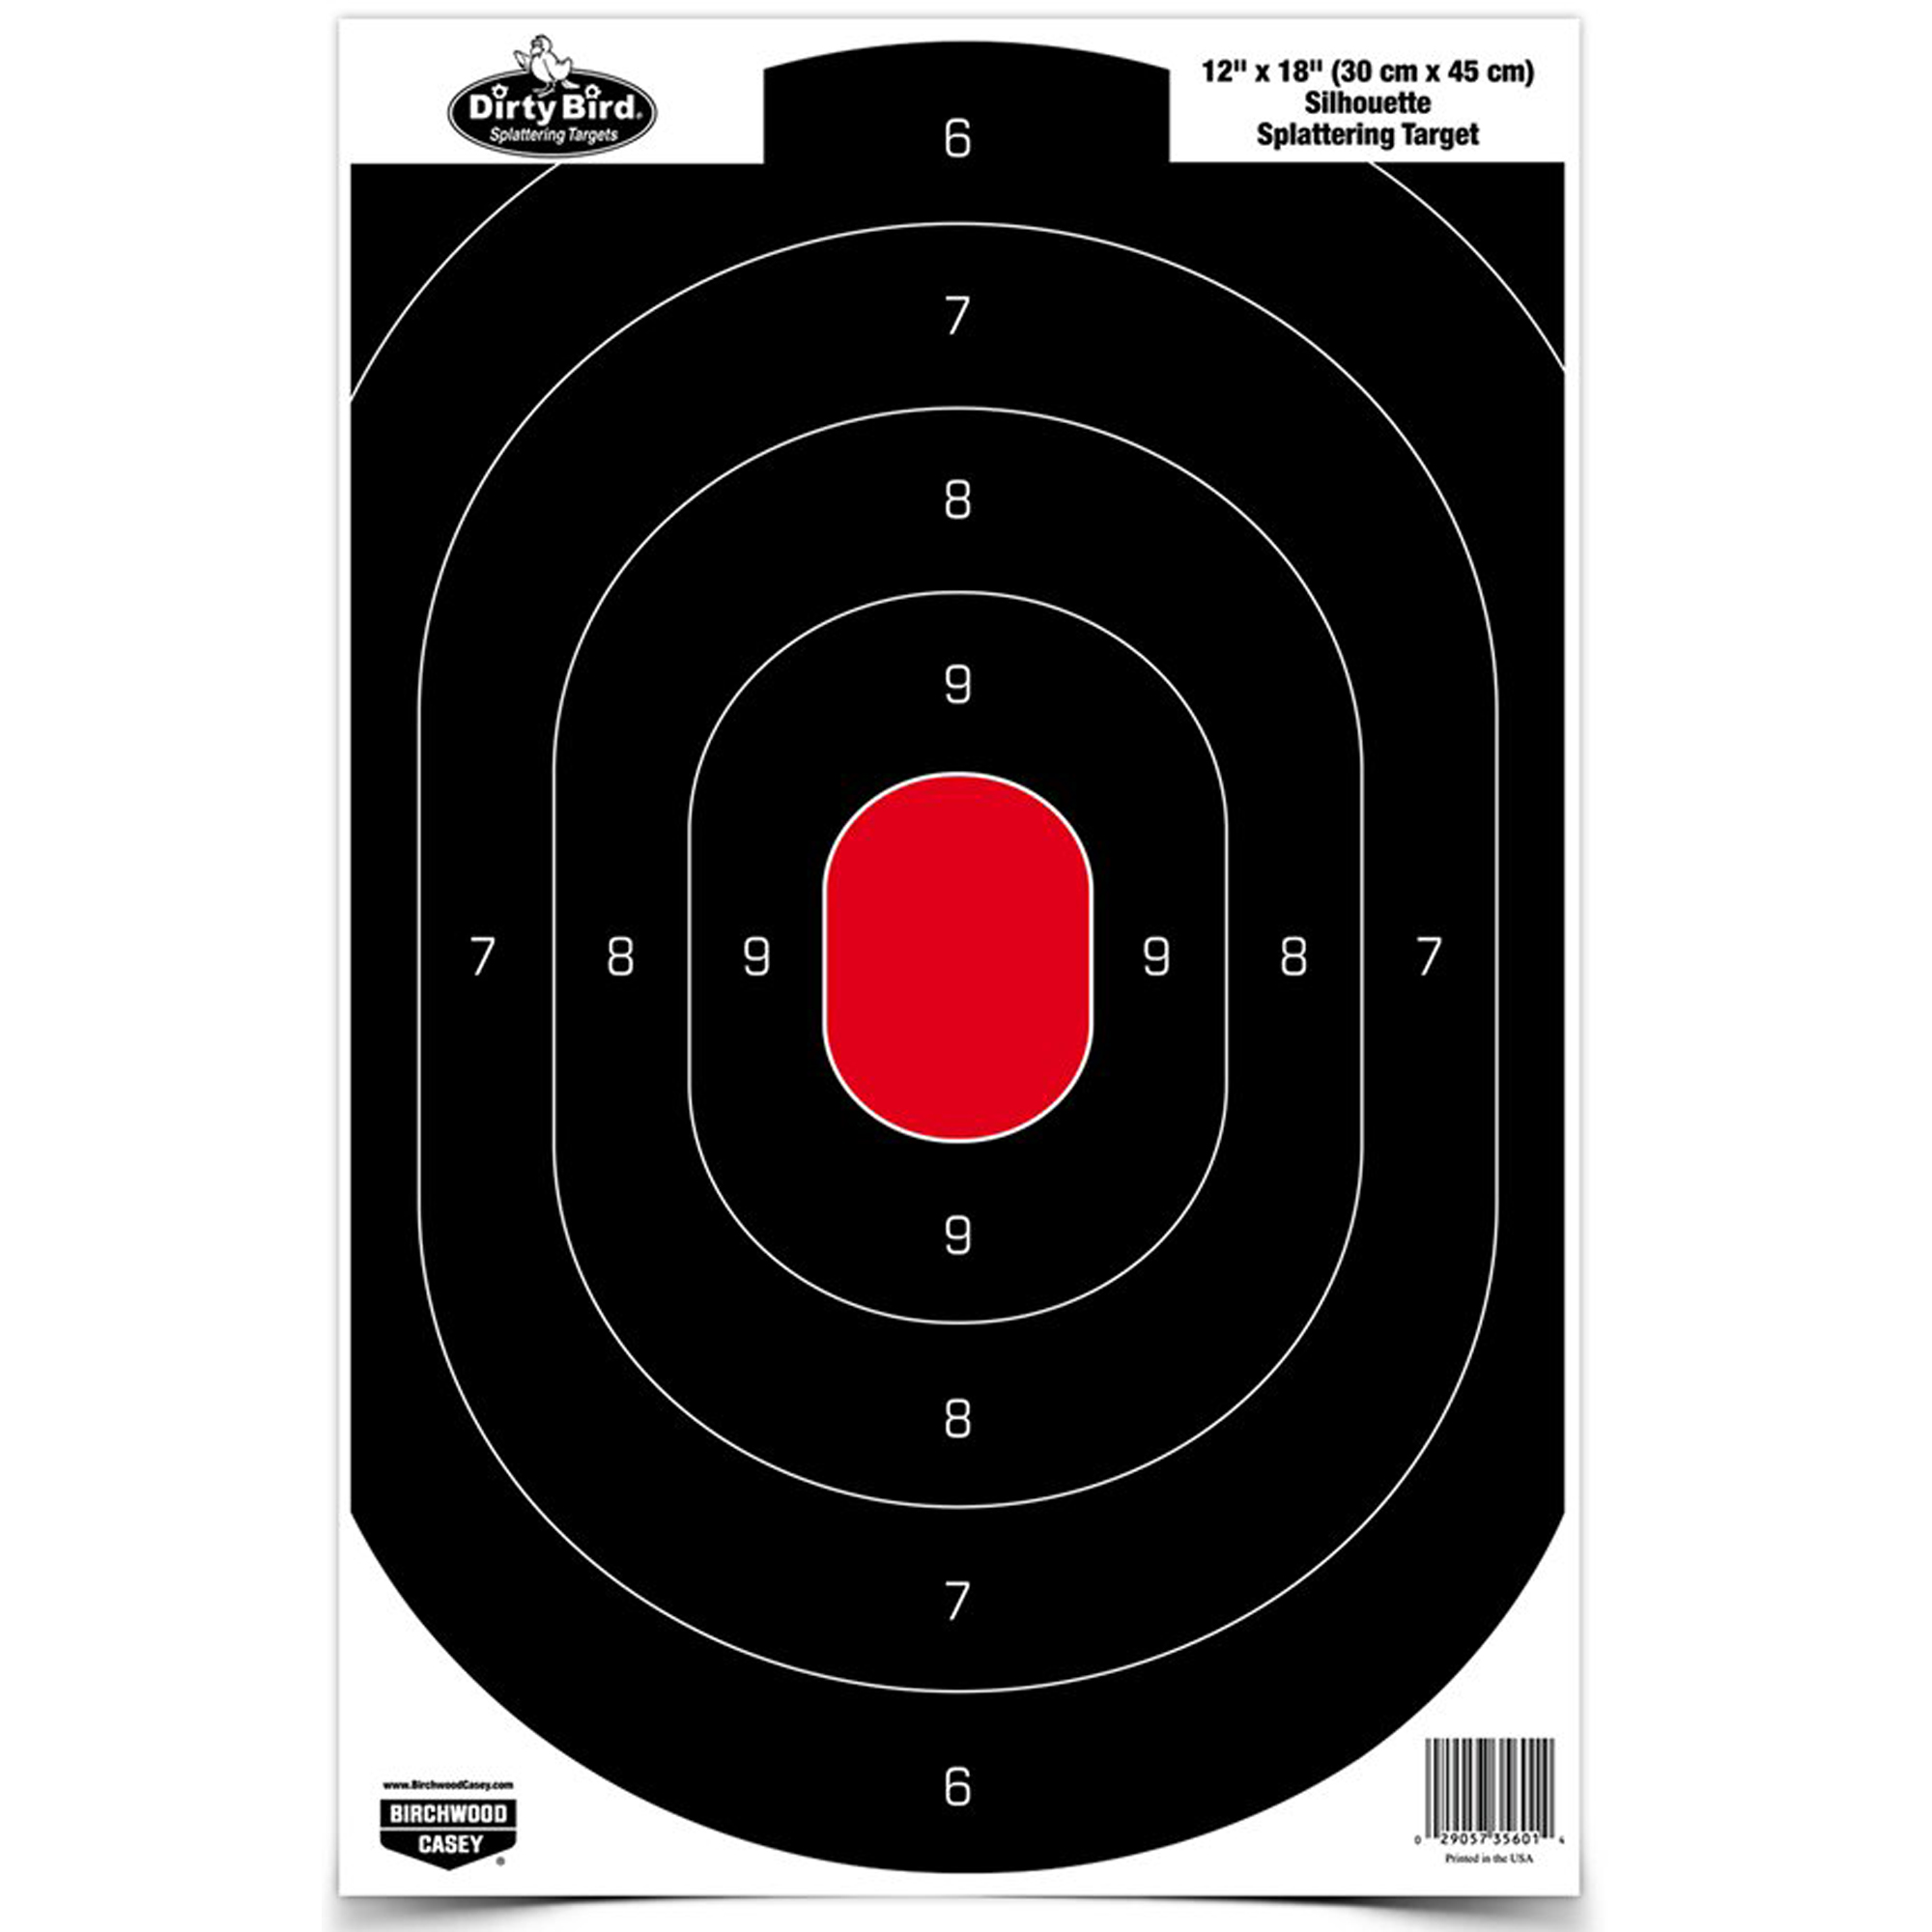 "Birchwood Casey is the name you know and trust when it comes to targets. They offer high quality"" affordable products made for serious shooters and beginners alike. Whether you're heading to the range for a day of fun with family and friends"" or getting some practice in before your next competition"" Birchwood Casey has the targets you need."